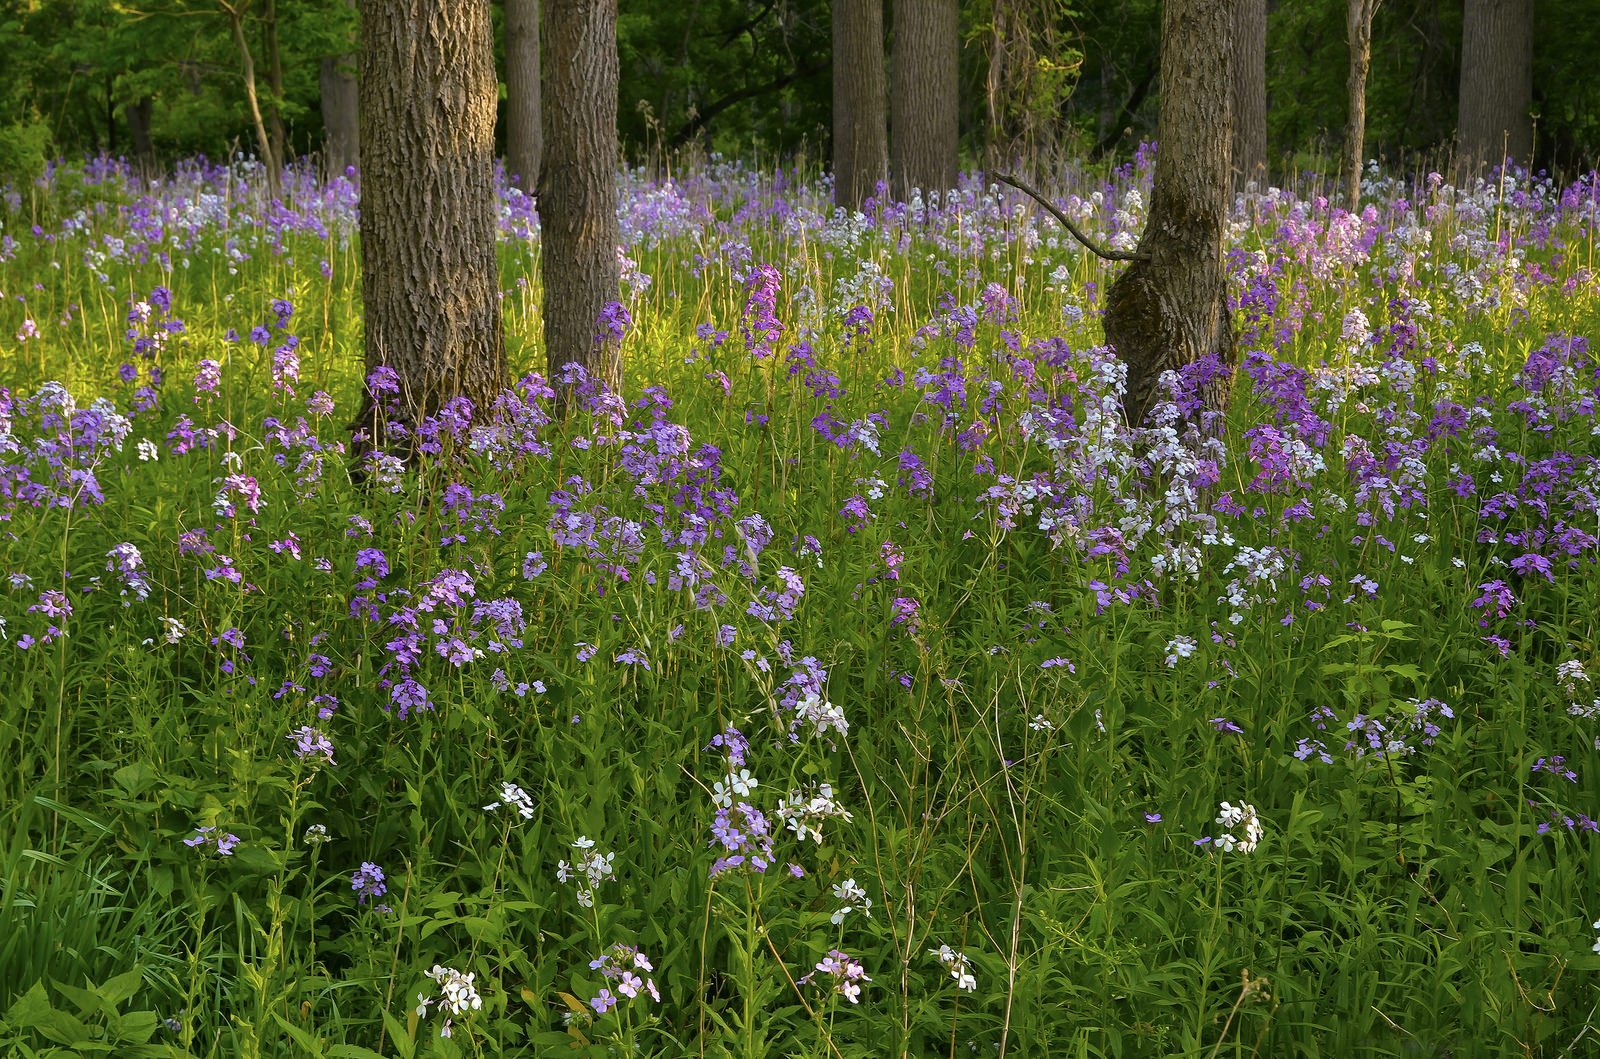 Flowers in the Short Hills. Photo courtesy of the Friends of the Greenbelt Foundation.